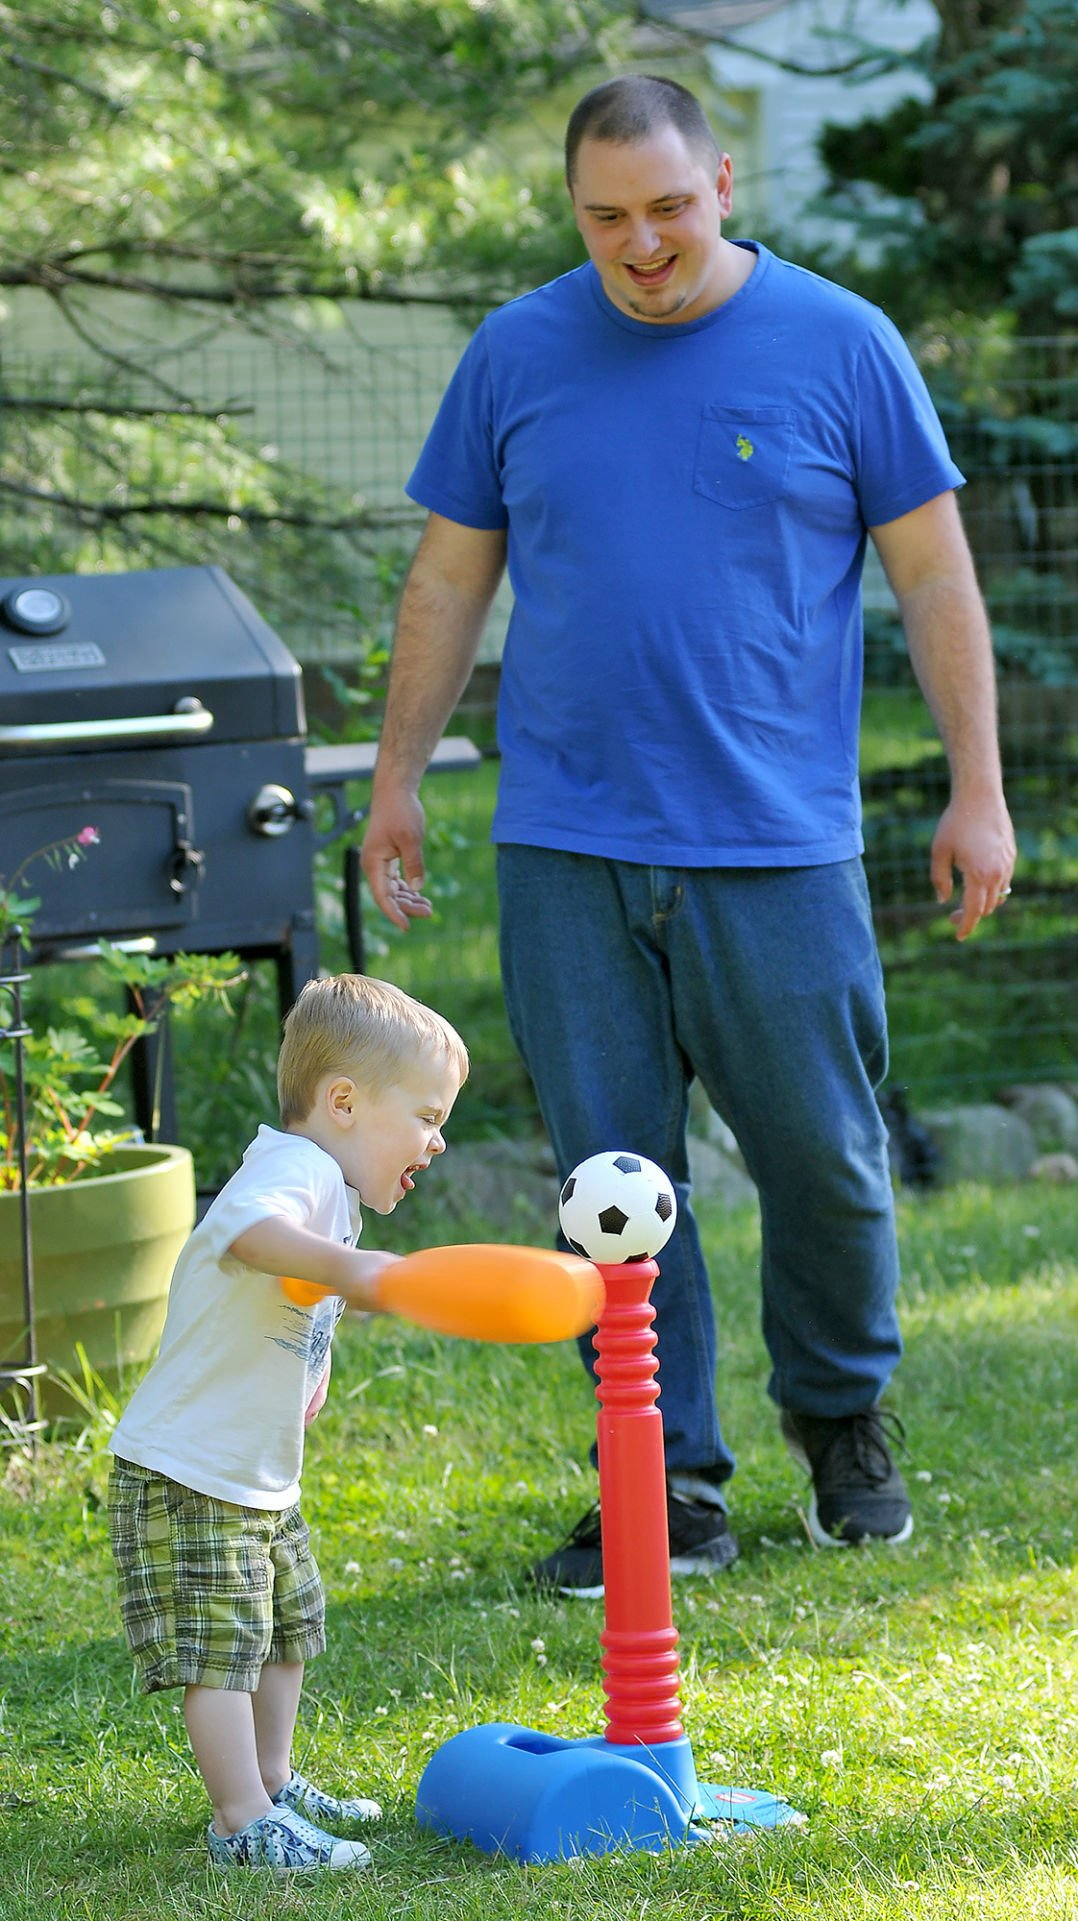 For the boys: In today's world, parenting seems more intense than ever before, but local dads are sticking to the basics